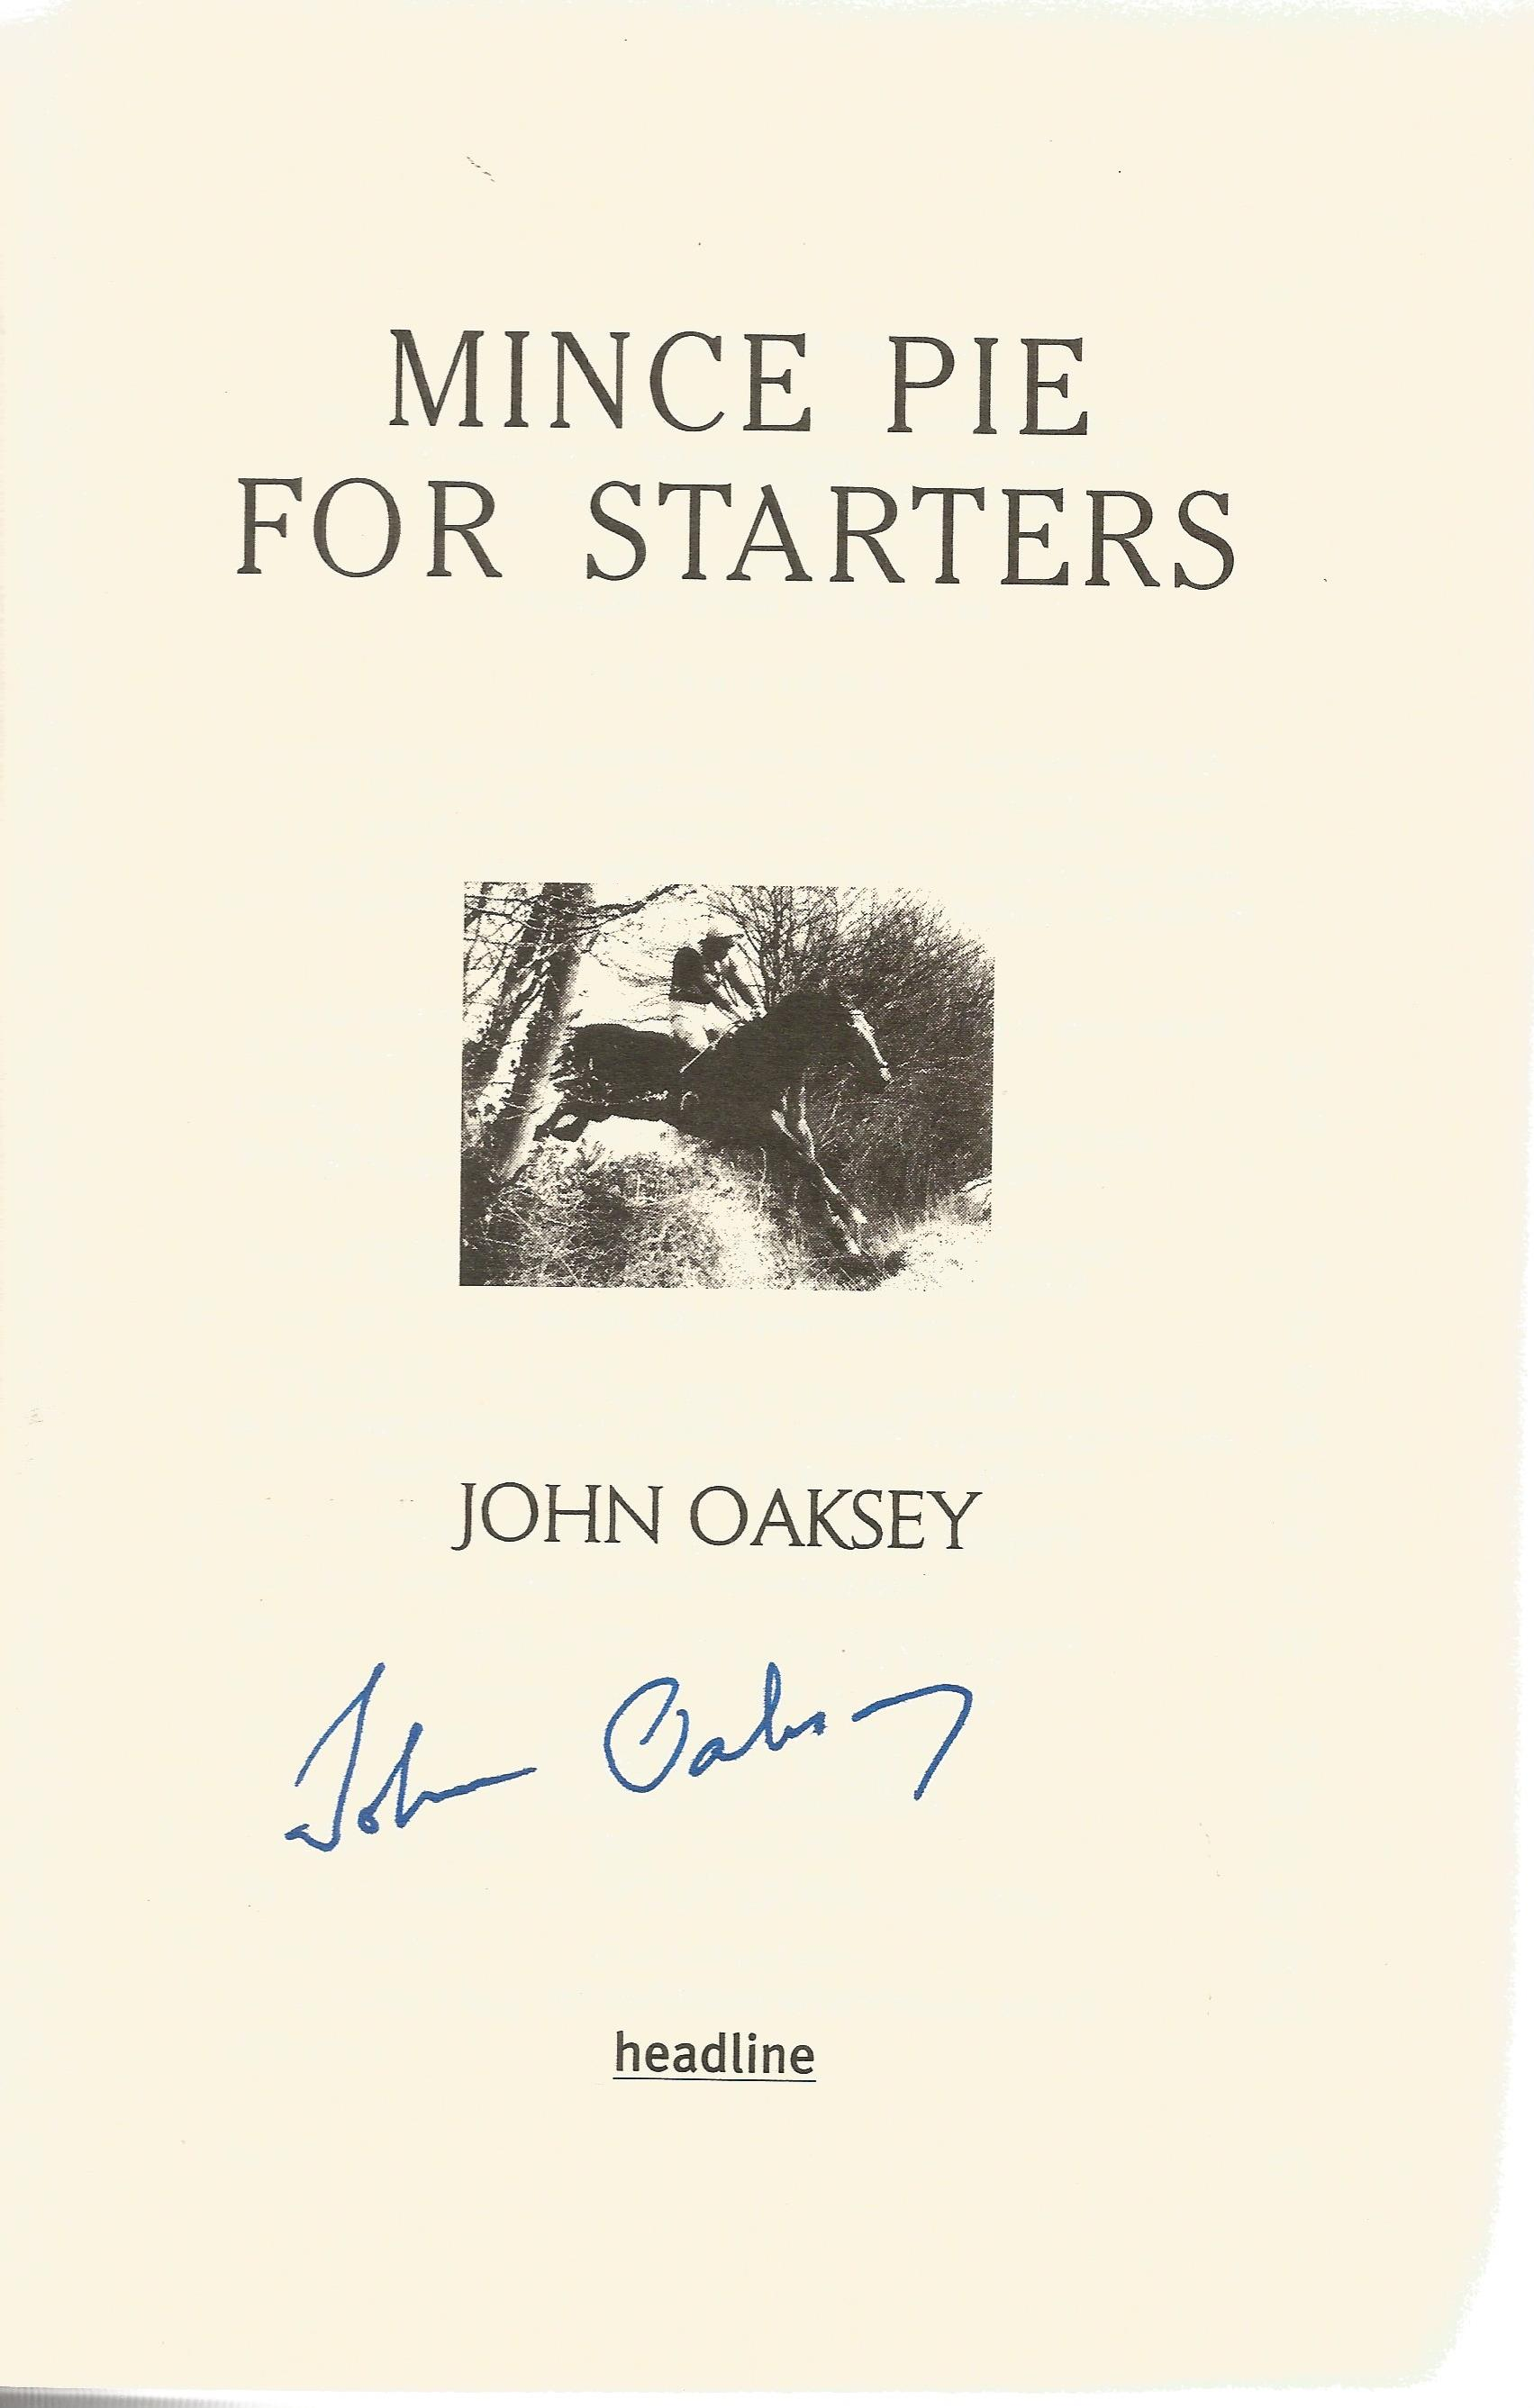 John Oaksey Signed Horse Racing Hardback Book 'Mince Pies For Starters'. Good condition. All - Image 2 of 3